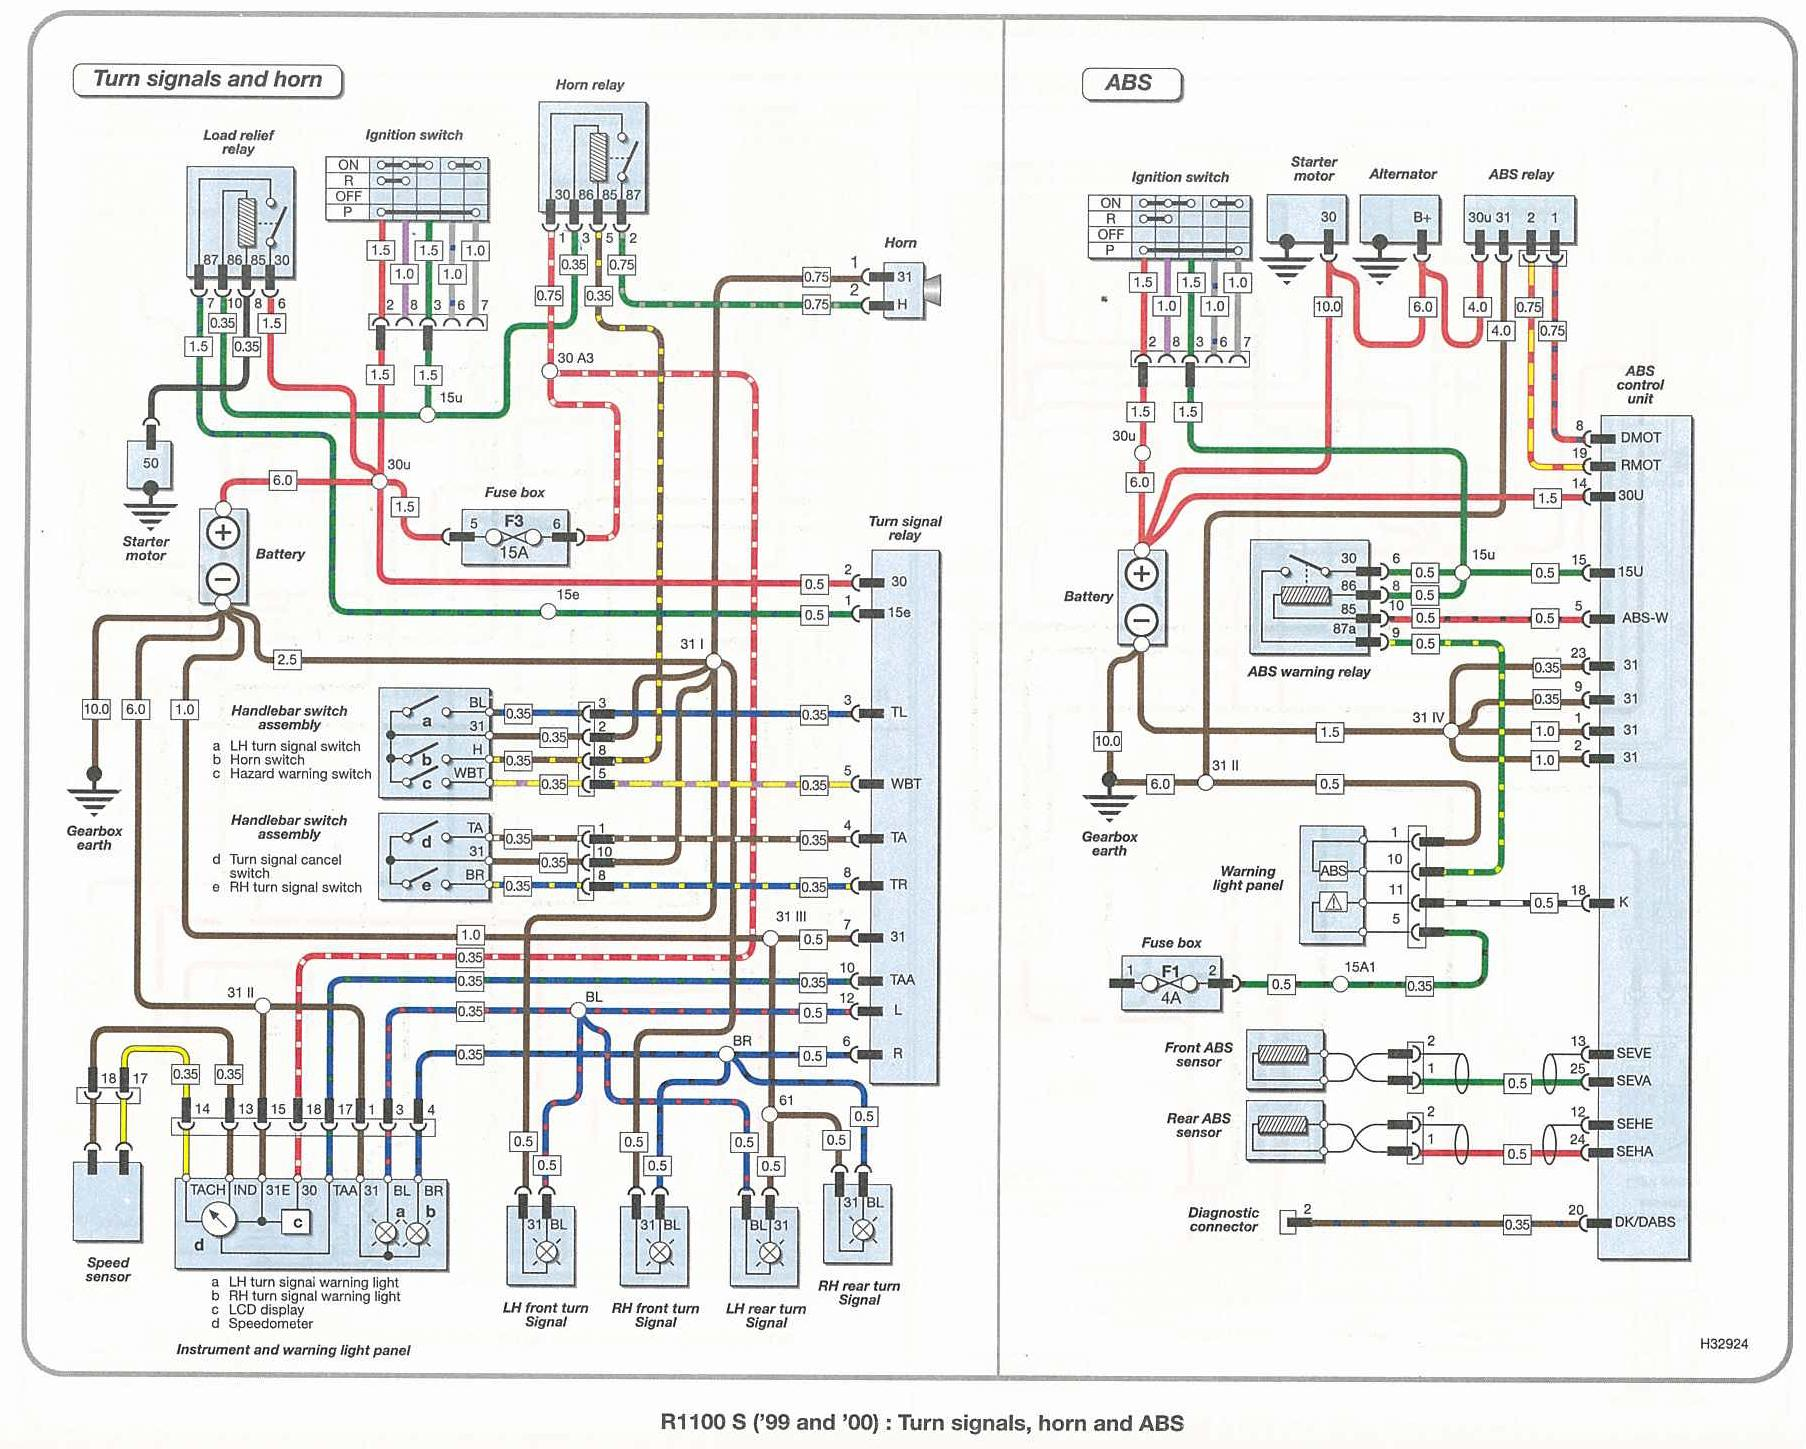 wiring03 bmw r1100s wiring diagrams 2003 bmw e46 wiring diagram at gsmx.co